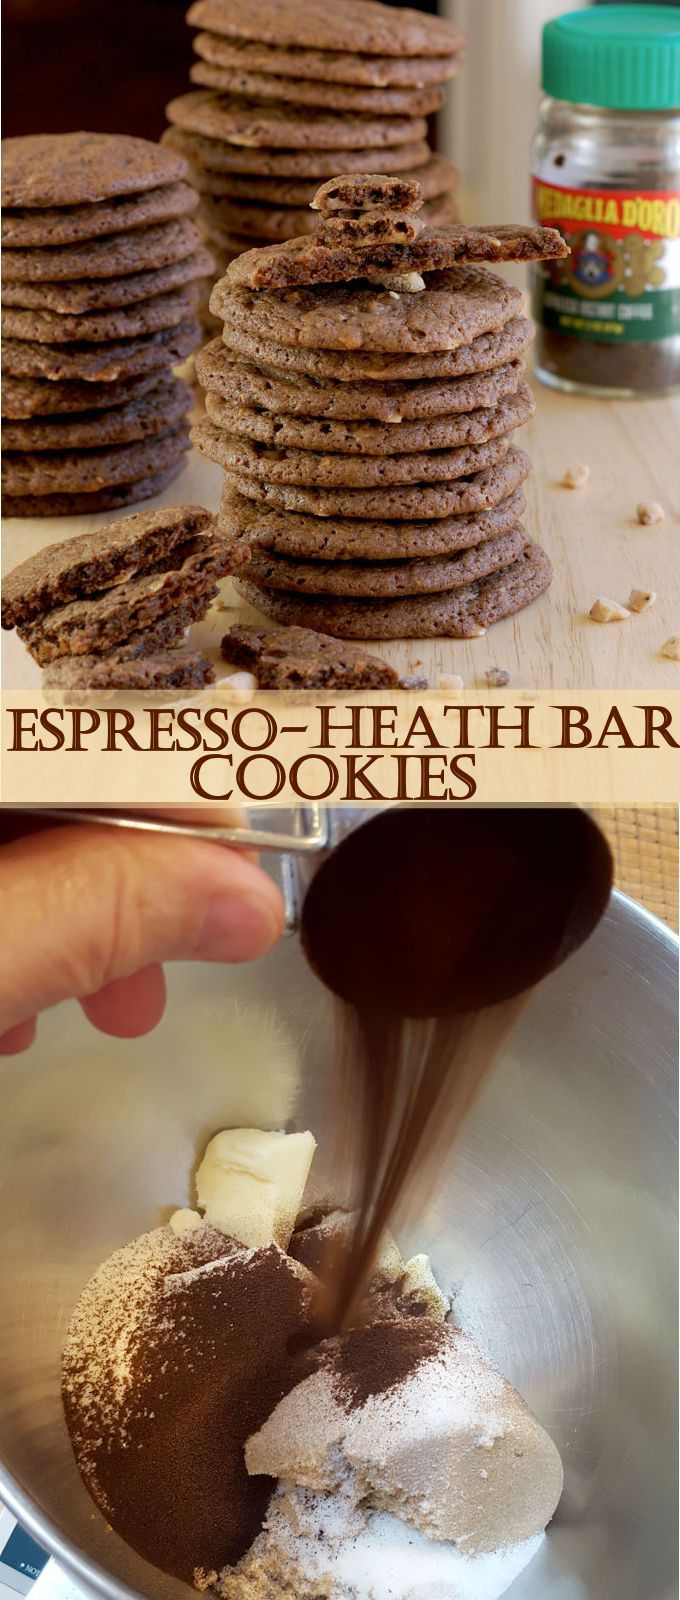 Espresso Heath Bar Chunk Cookies are thin, crisp and loaded with crunchy toffee bits. With plenty of espresso flavor, this is a cookie for grown ups.